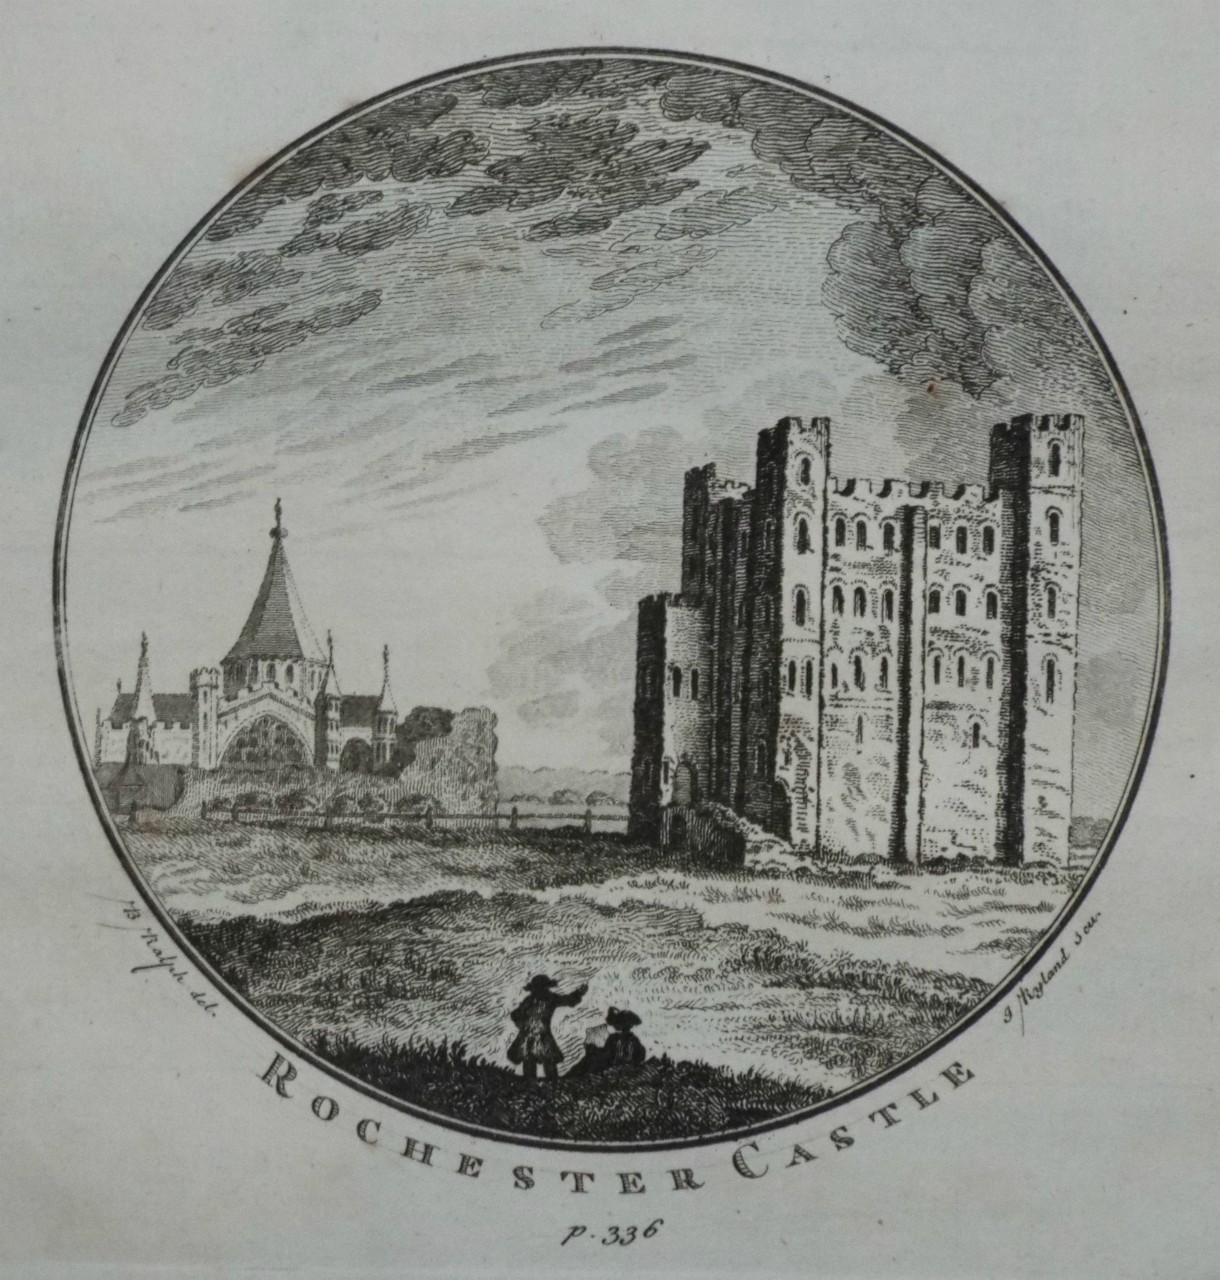 Print - Rochester Castle p.338. - Ryland